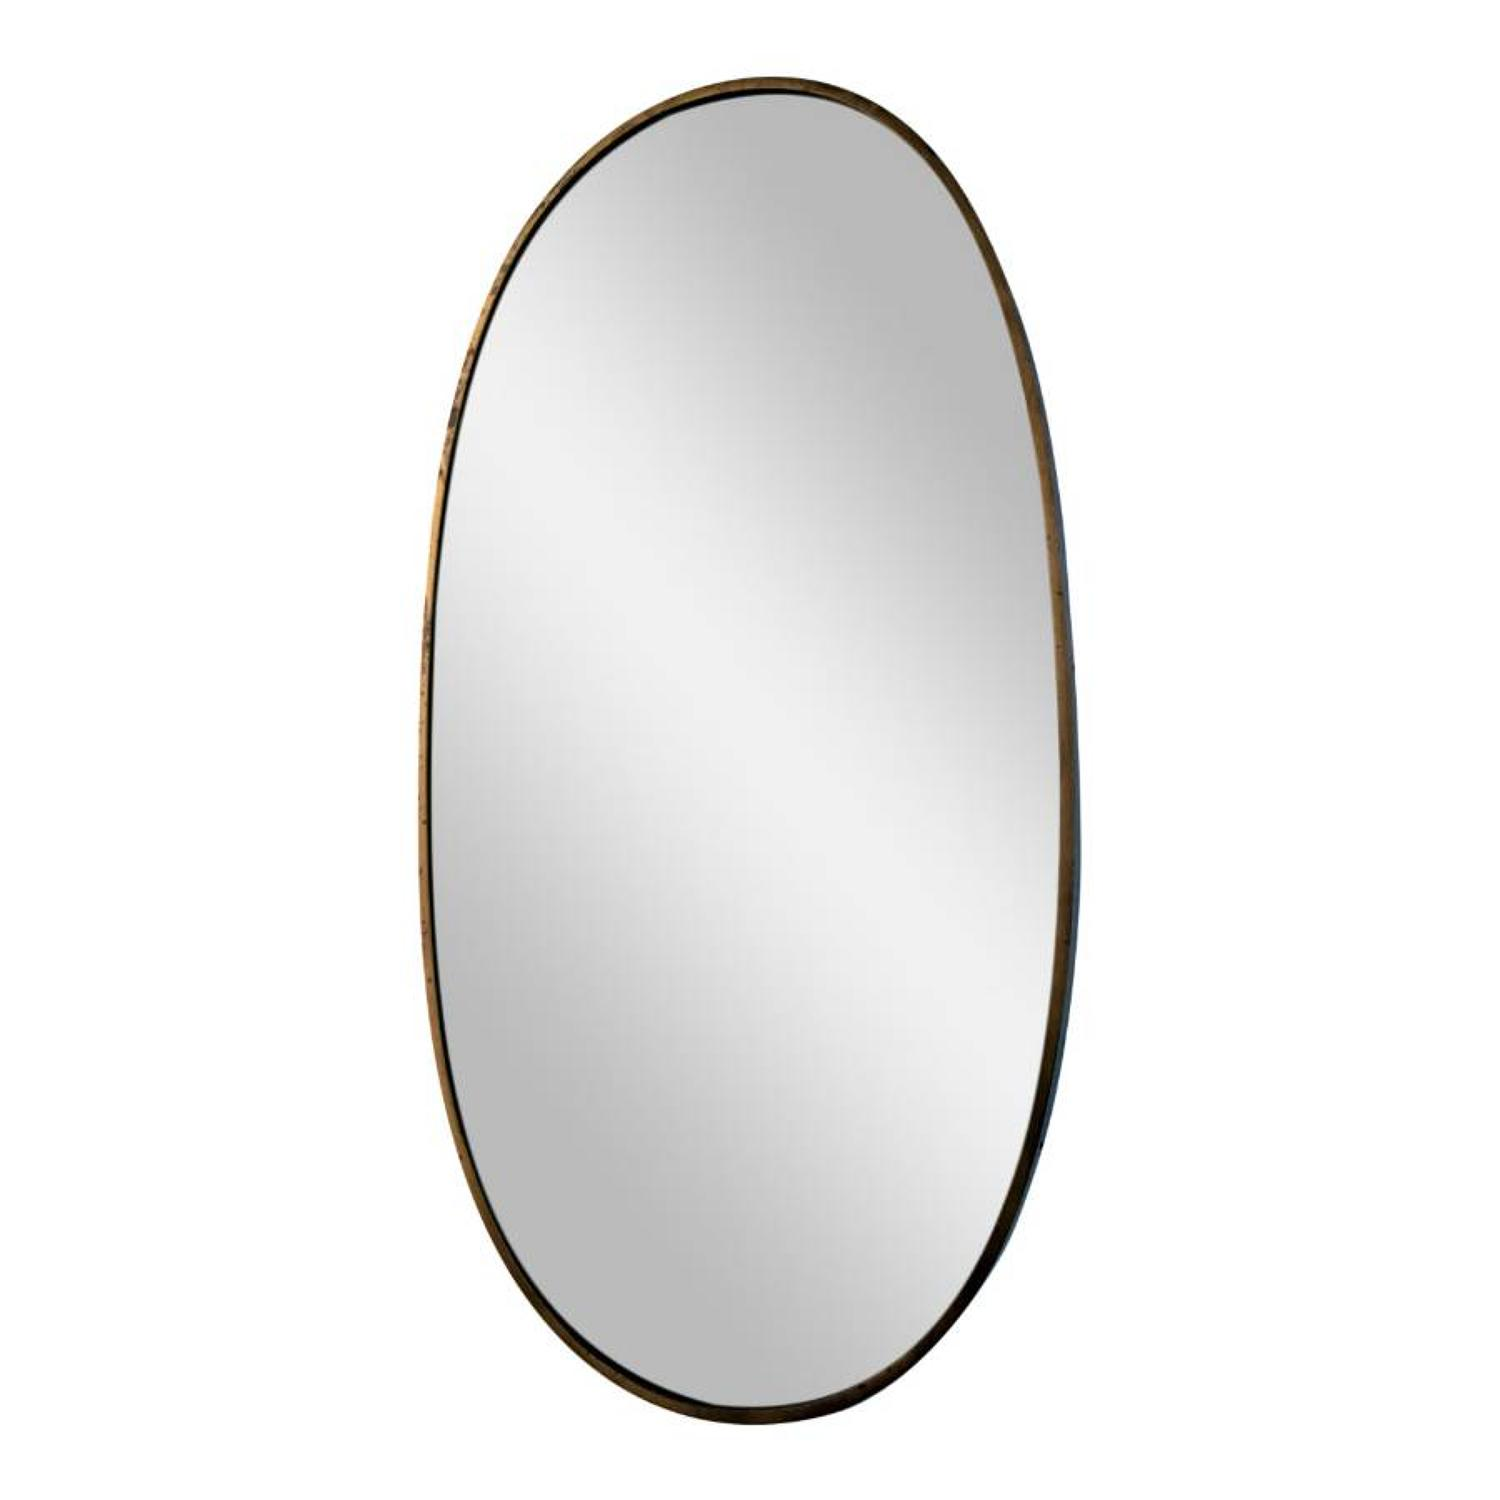 Italian oval brass mirror